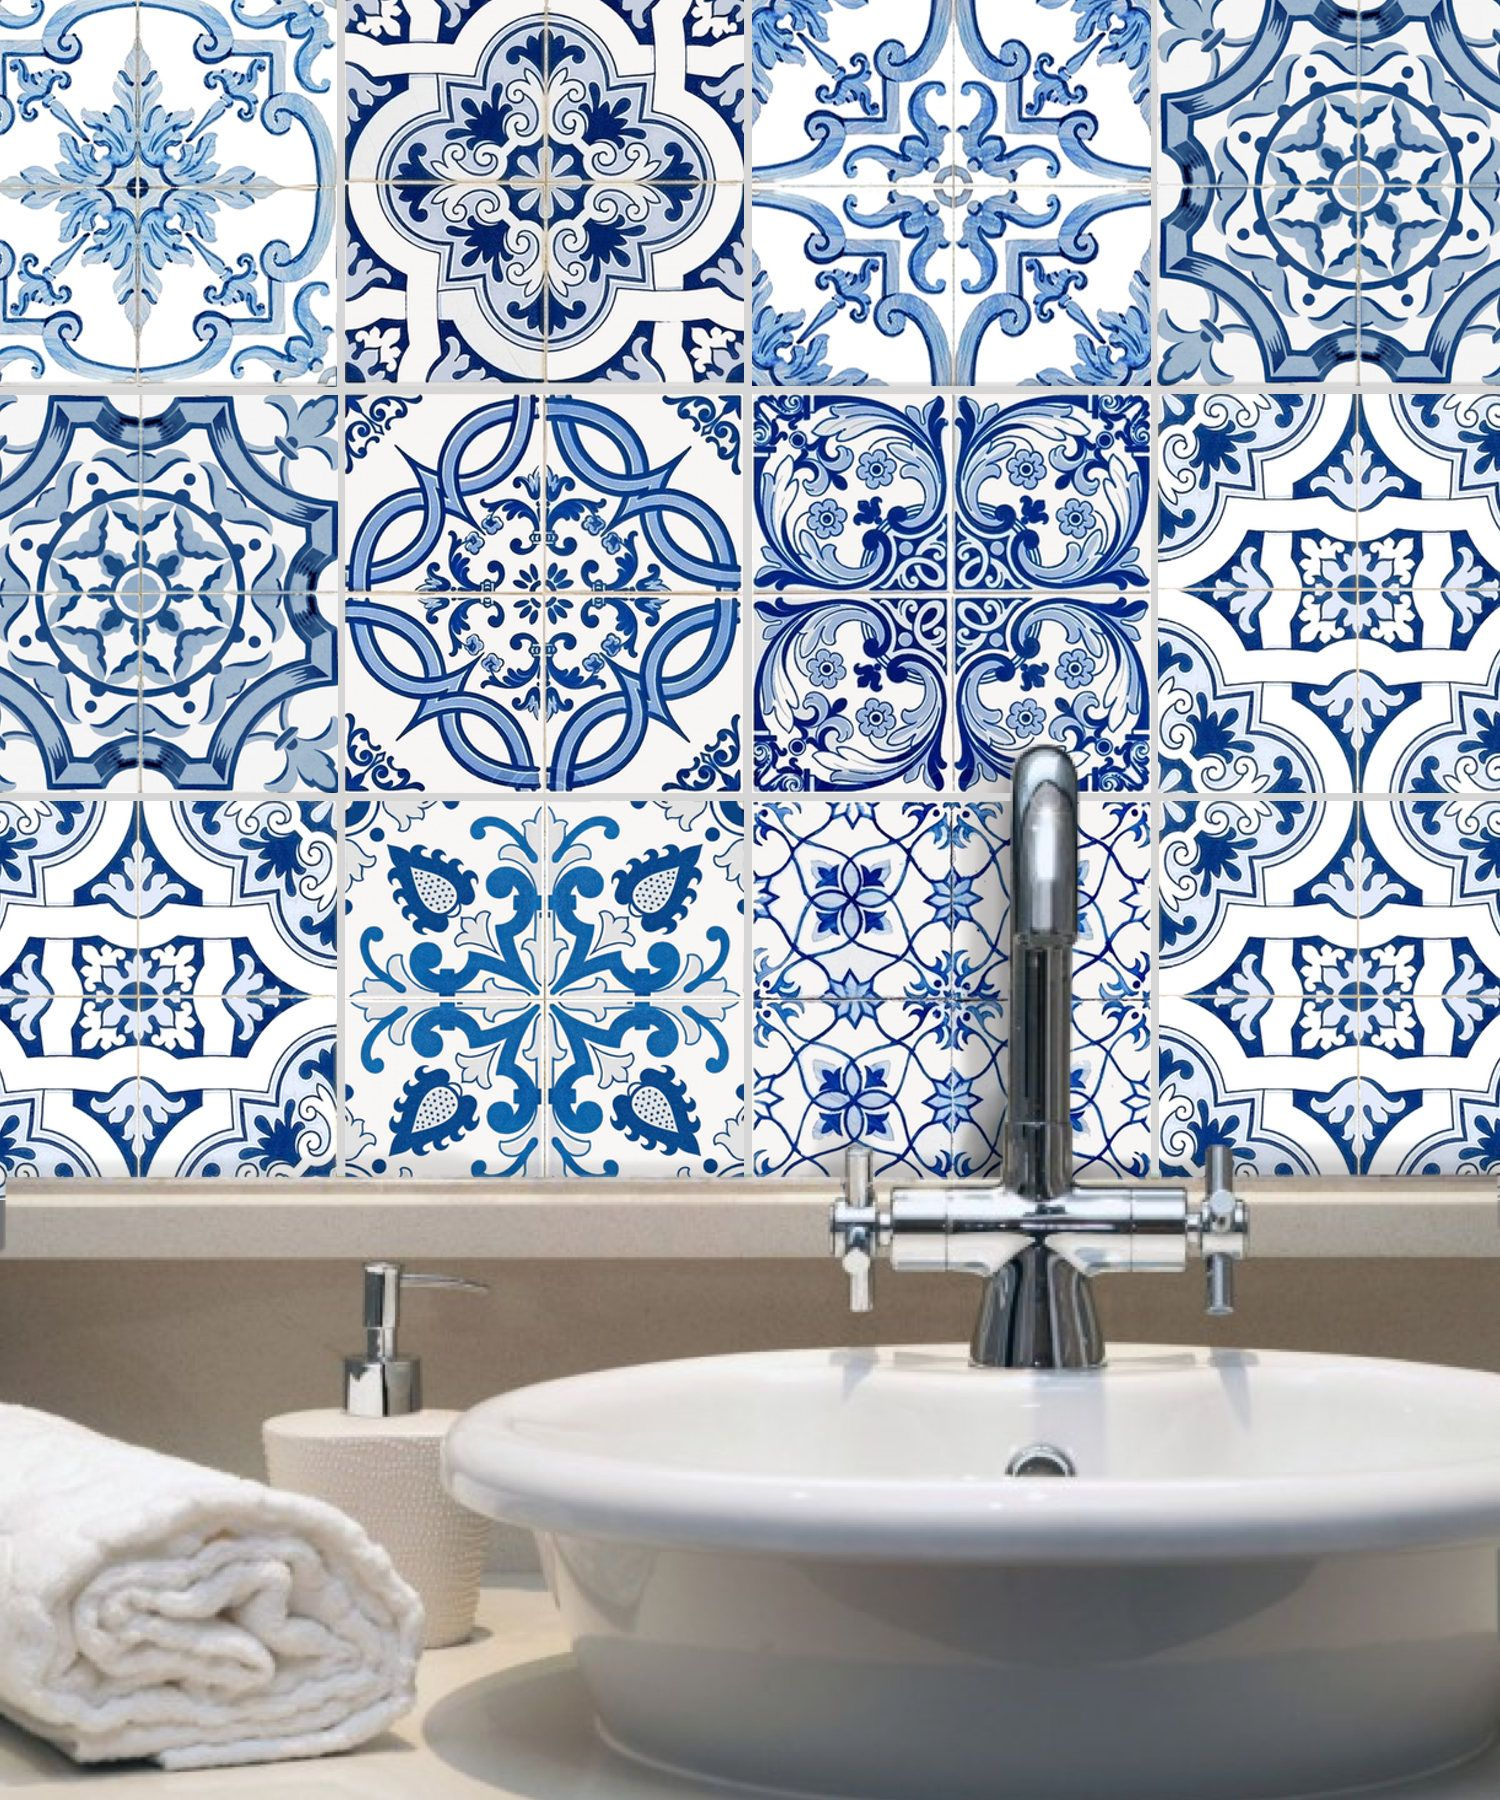 Tile Stickers Vinyl Decal Waterproof Removable: Blue Spanish Mexican ...